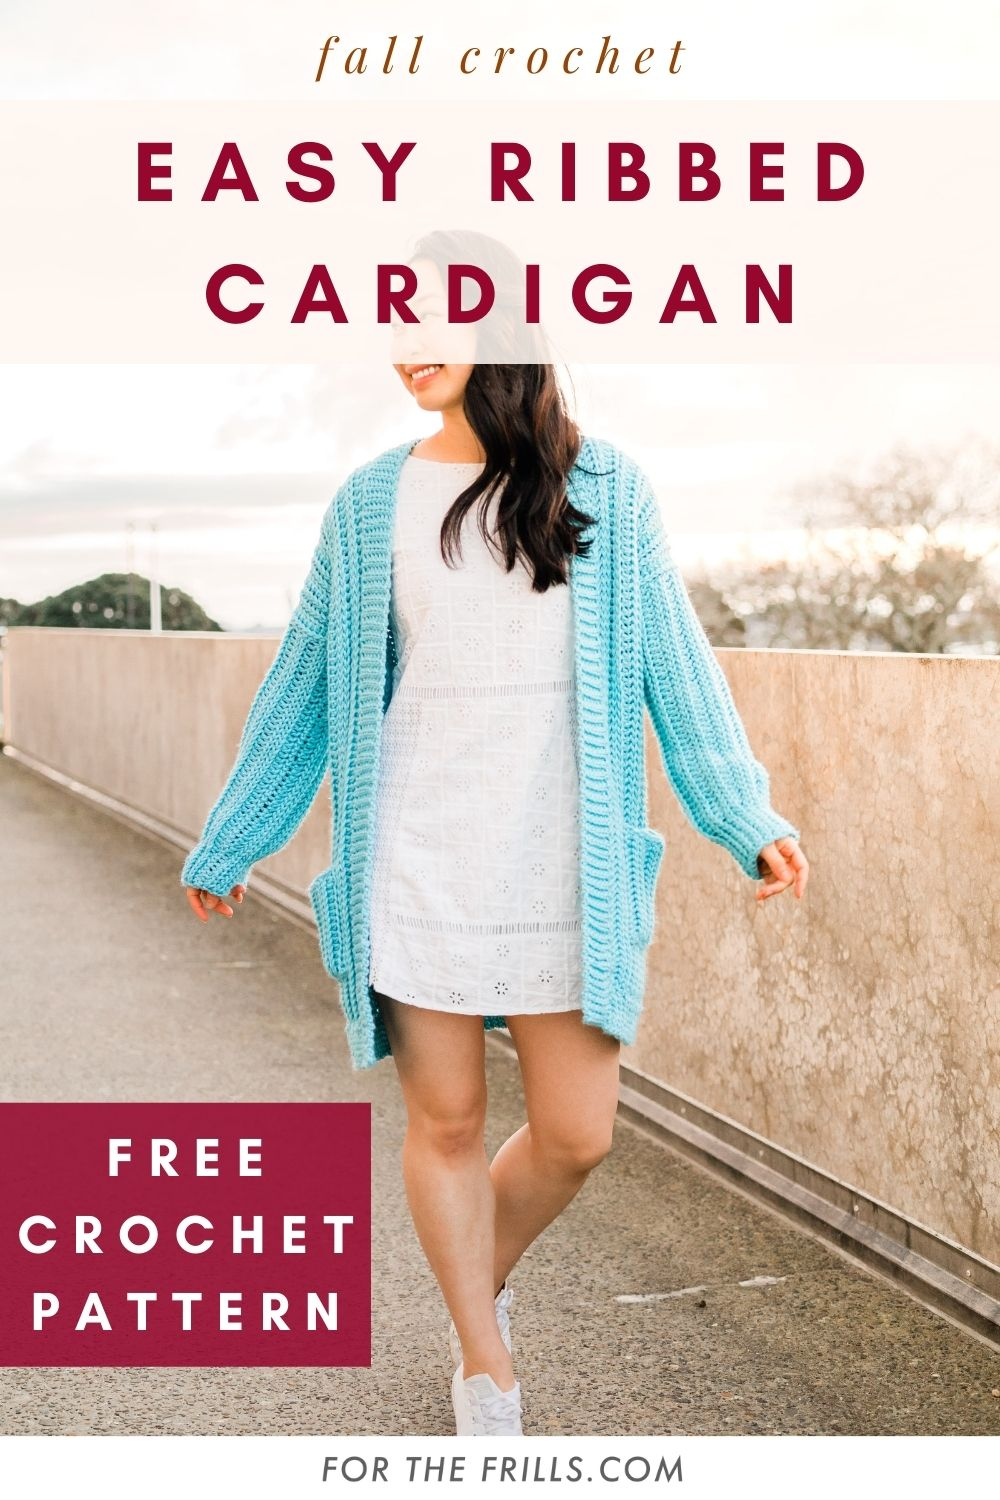 pinterest image of long ribbed crochet cardigan with pockets